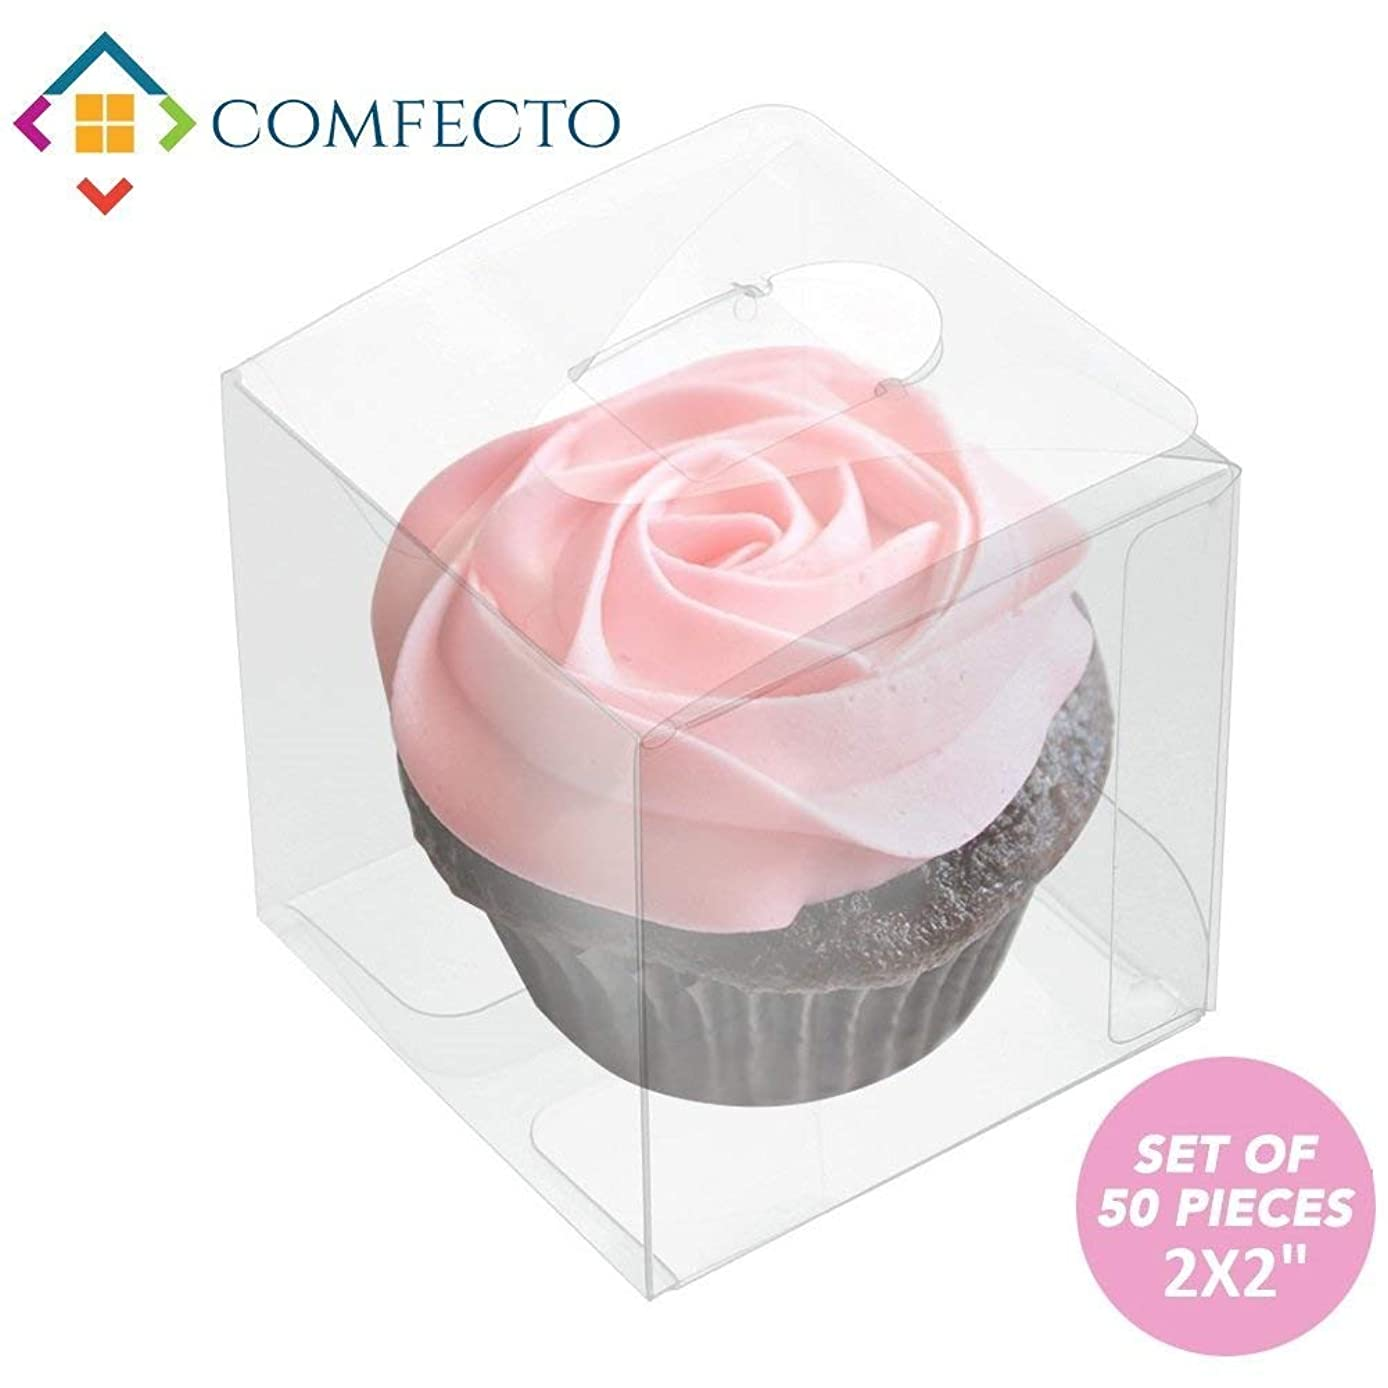 COMFECTO 50 Pcs 2x2x2 inch Clear Crystal Plastic Tuck Top PVC Boxes, Excellent for Cupcake Chocolate Wedding Favor Party Gift Display, Effortless Assembly Easy to Fold Boxes with Predefined Creases